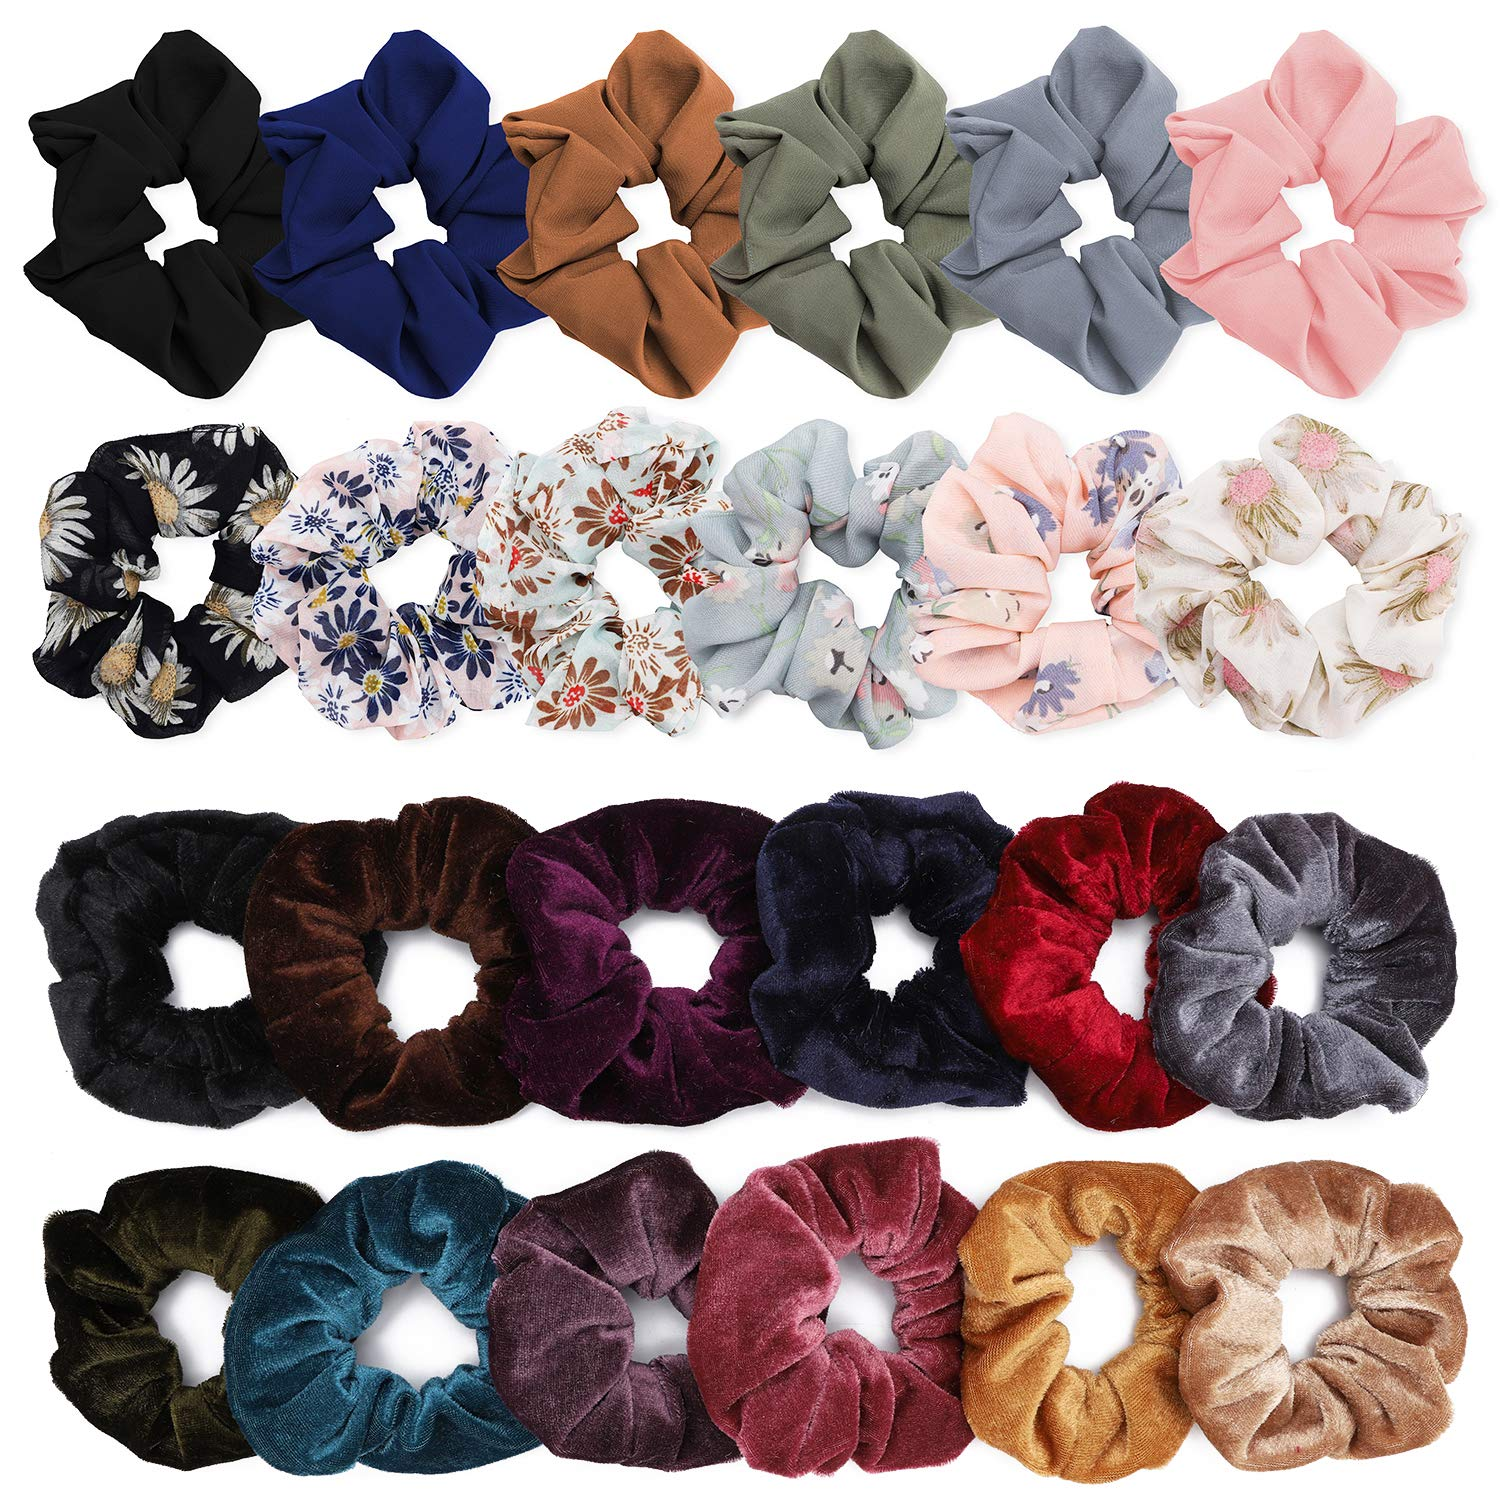 Apparel Accessories Burn Flower Hair Ring Fashion Singed Hair Tie Girl Women Elastic Hair Rope Ponytail Holders Easy To Repair